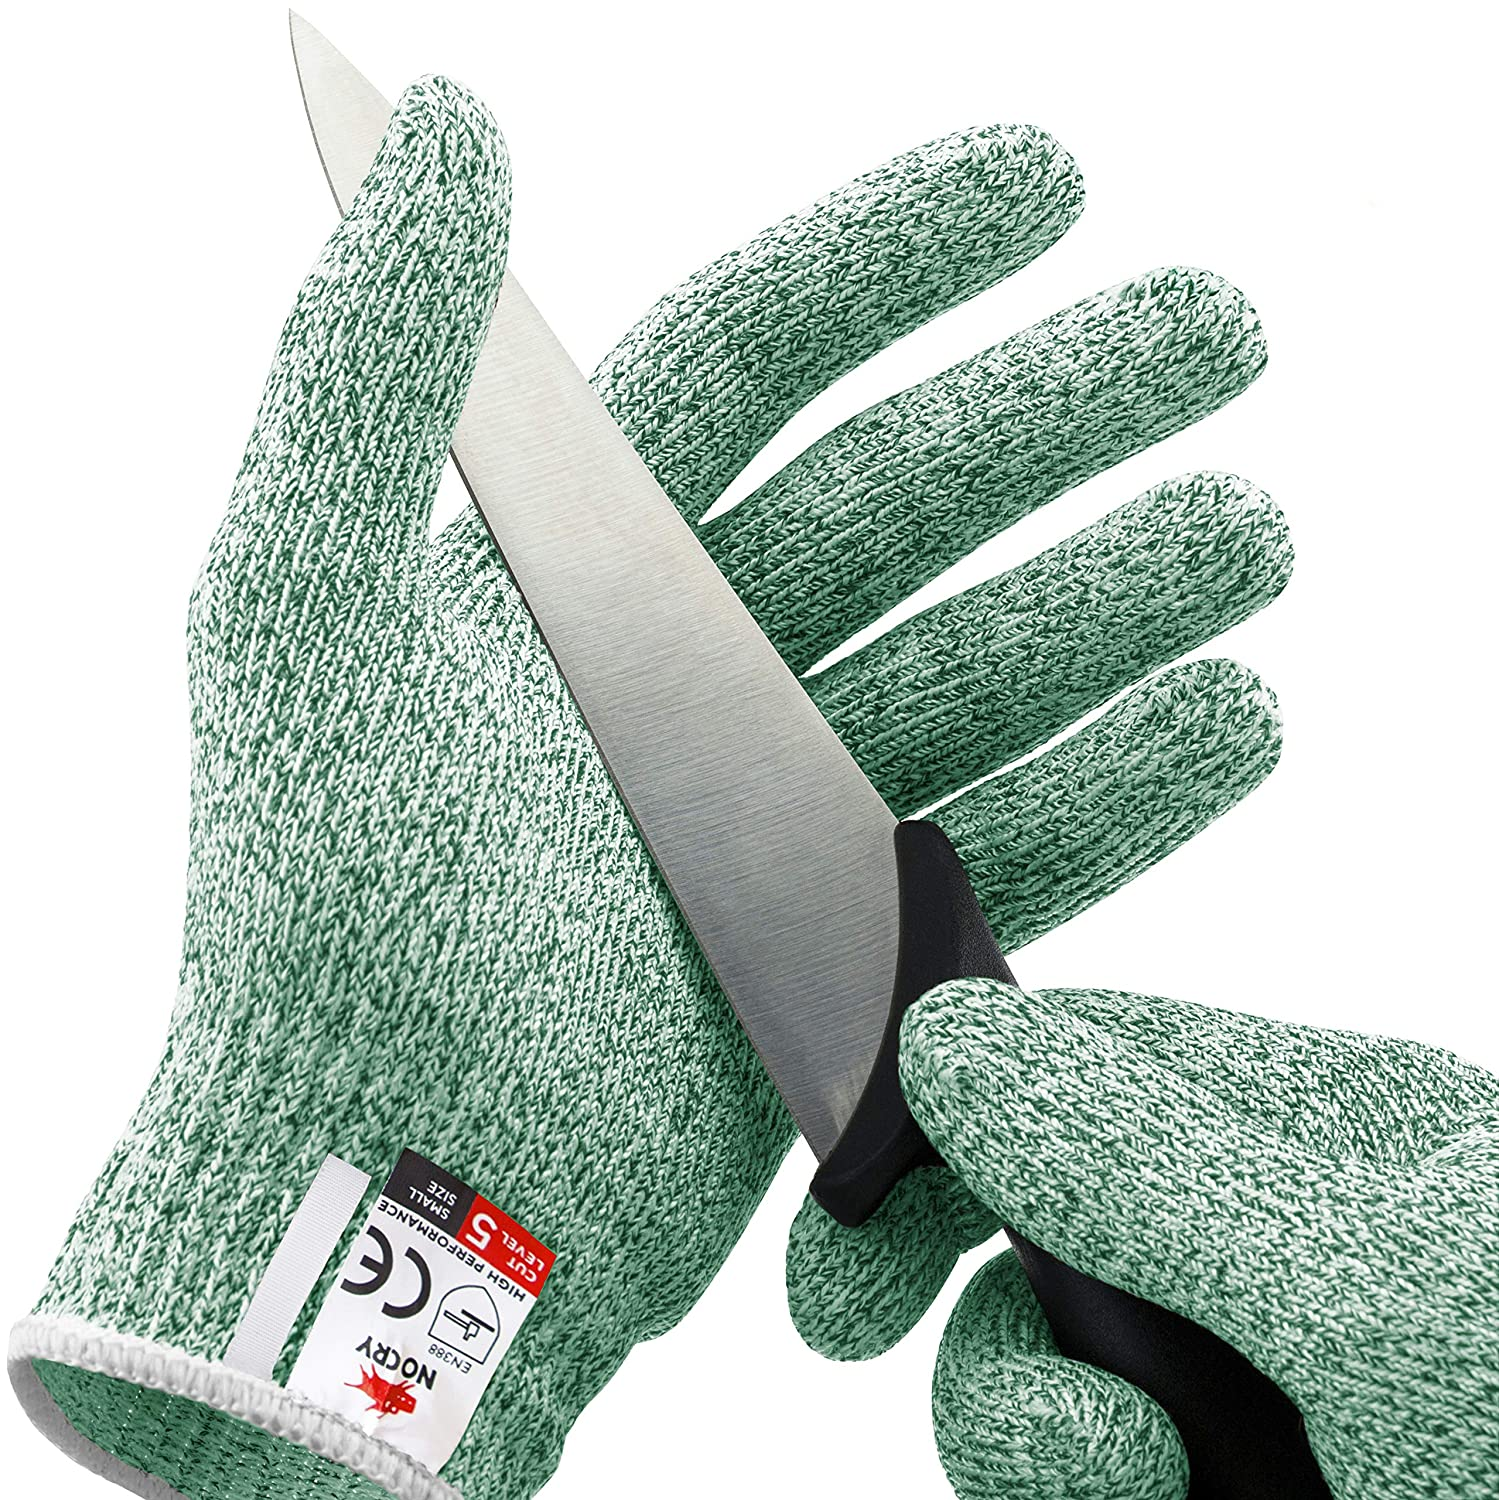 NoCry Cut Resistant Gloves - High Performance Level 5 Protection, Food Grade. Green, Size Small